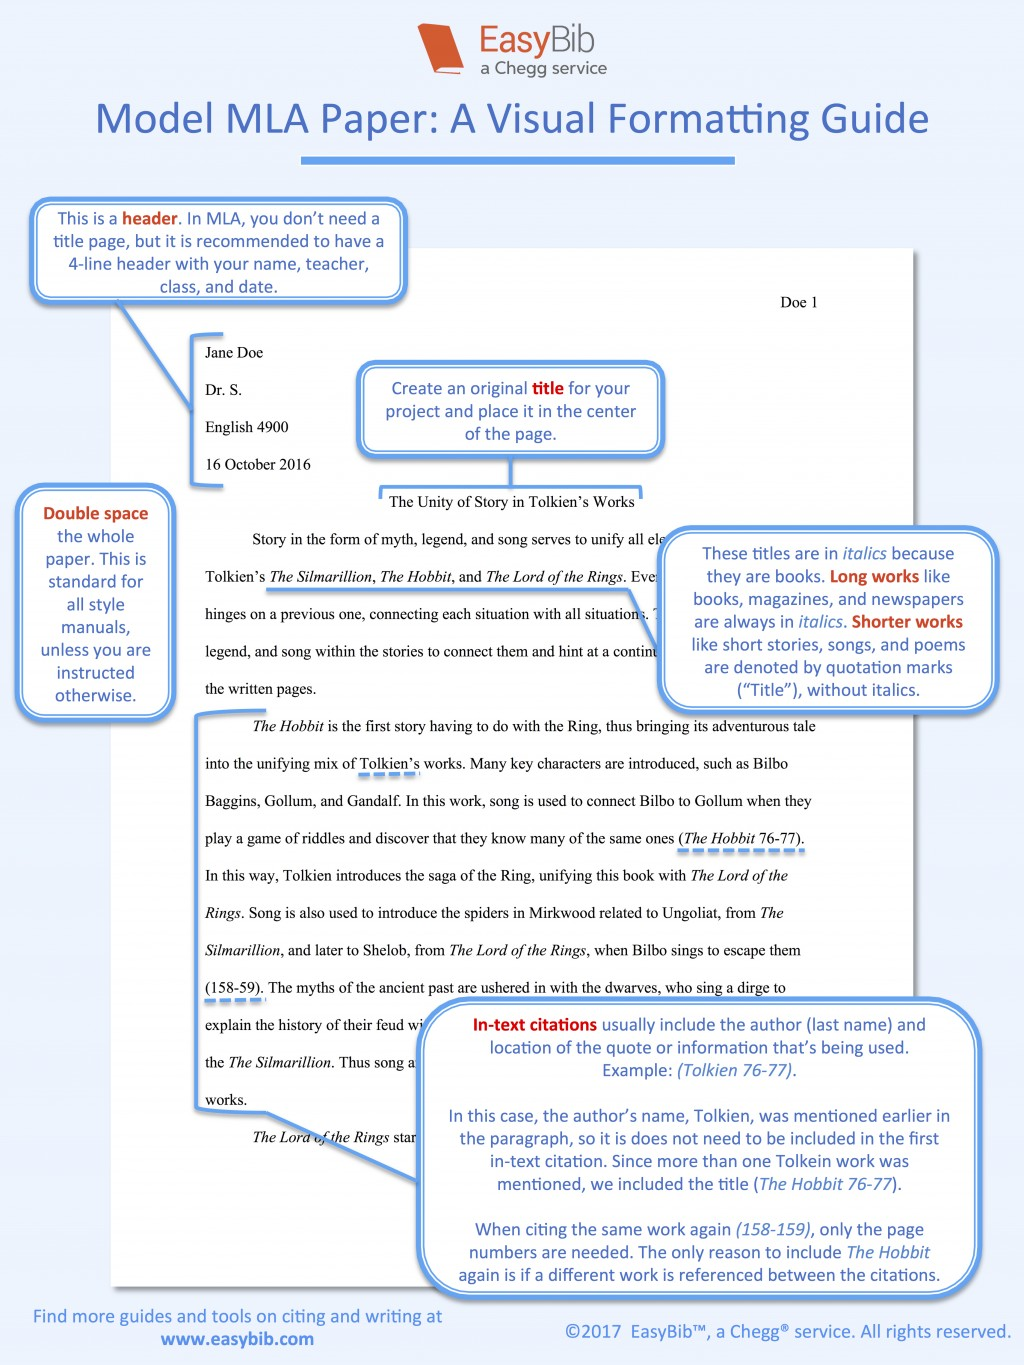 013 Model Mla Paper Citing Impressive A Research Works Cited How To Cite Website In Your 8 Large